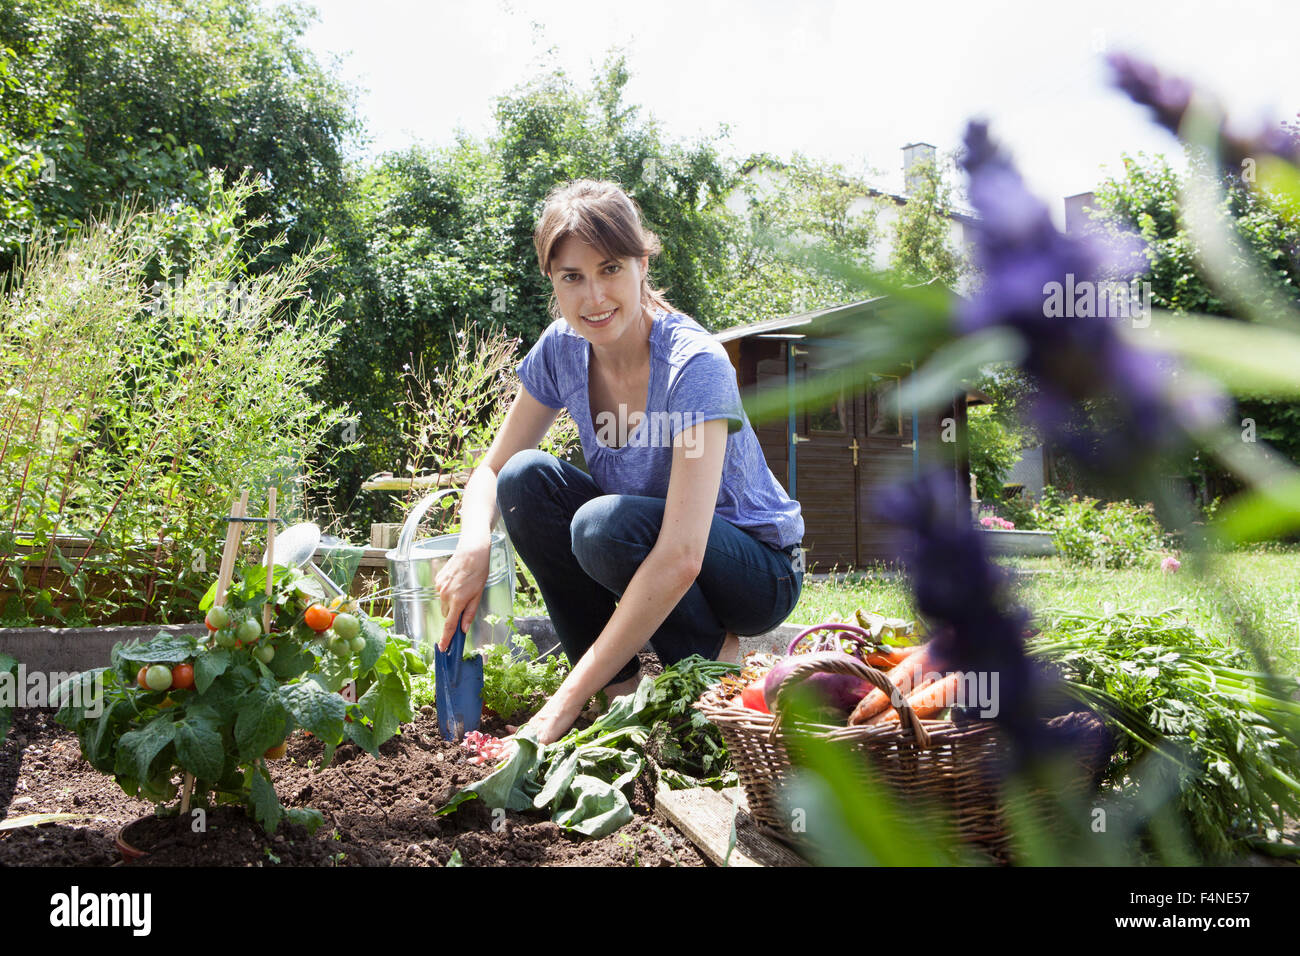 Smiling woman gardening in vegetable patch Stock Photo